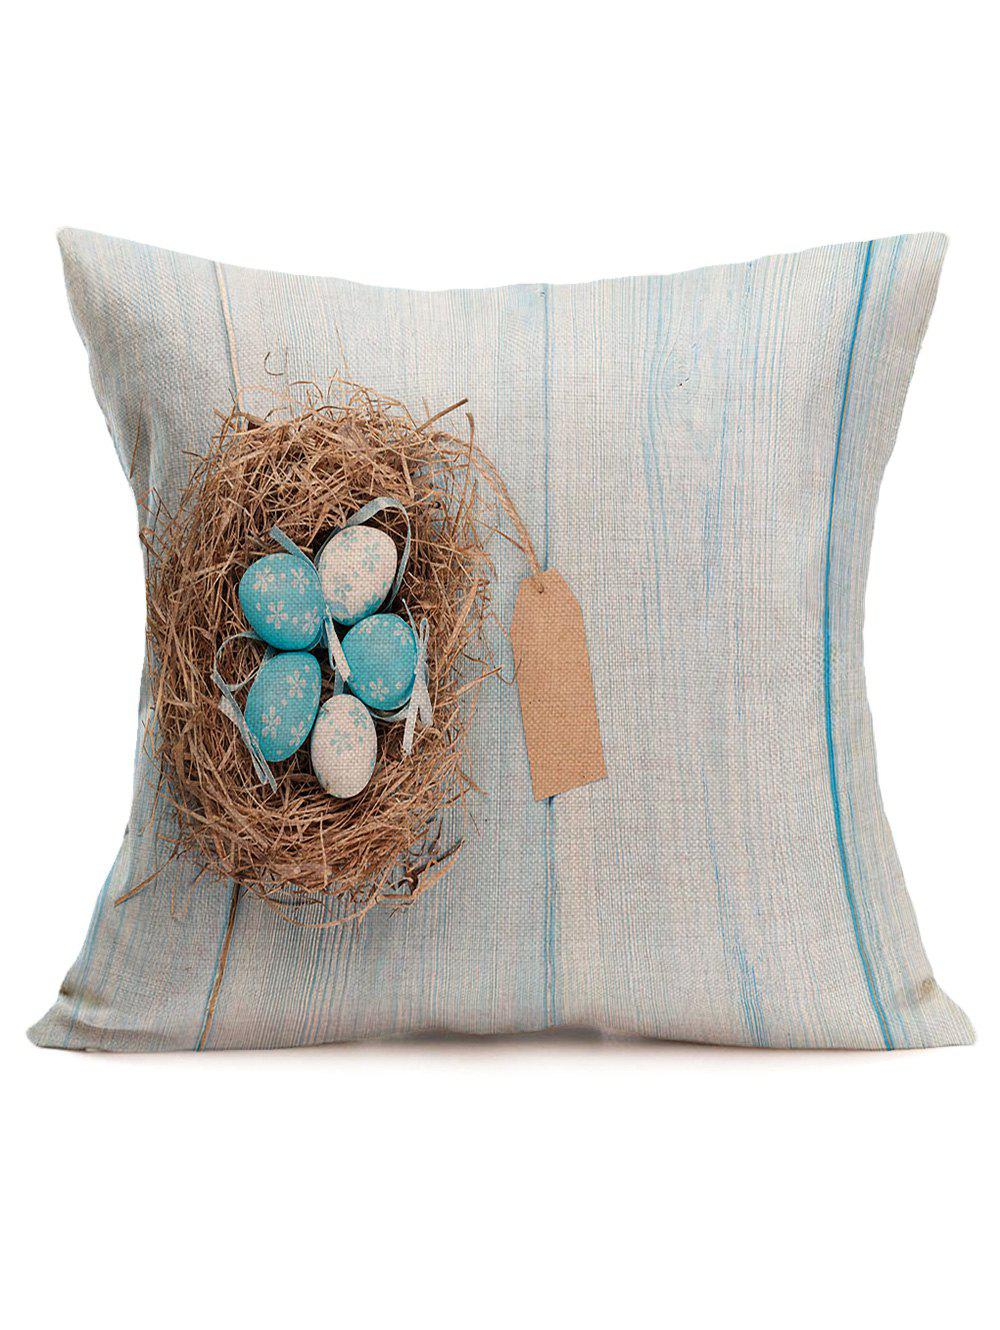 2018 Easter Eggs Printed Pillowcase COLORMIX In Decorative Pillows & Shams Online Store. Best ...